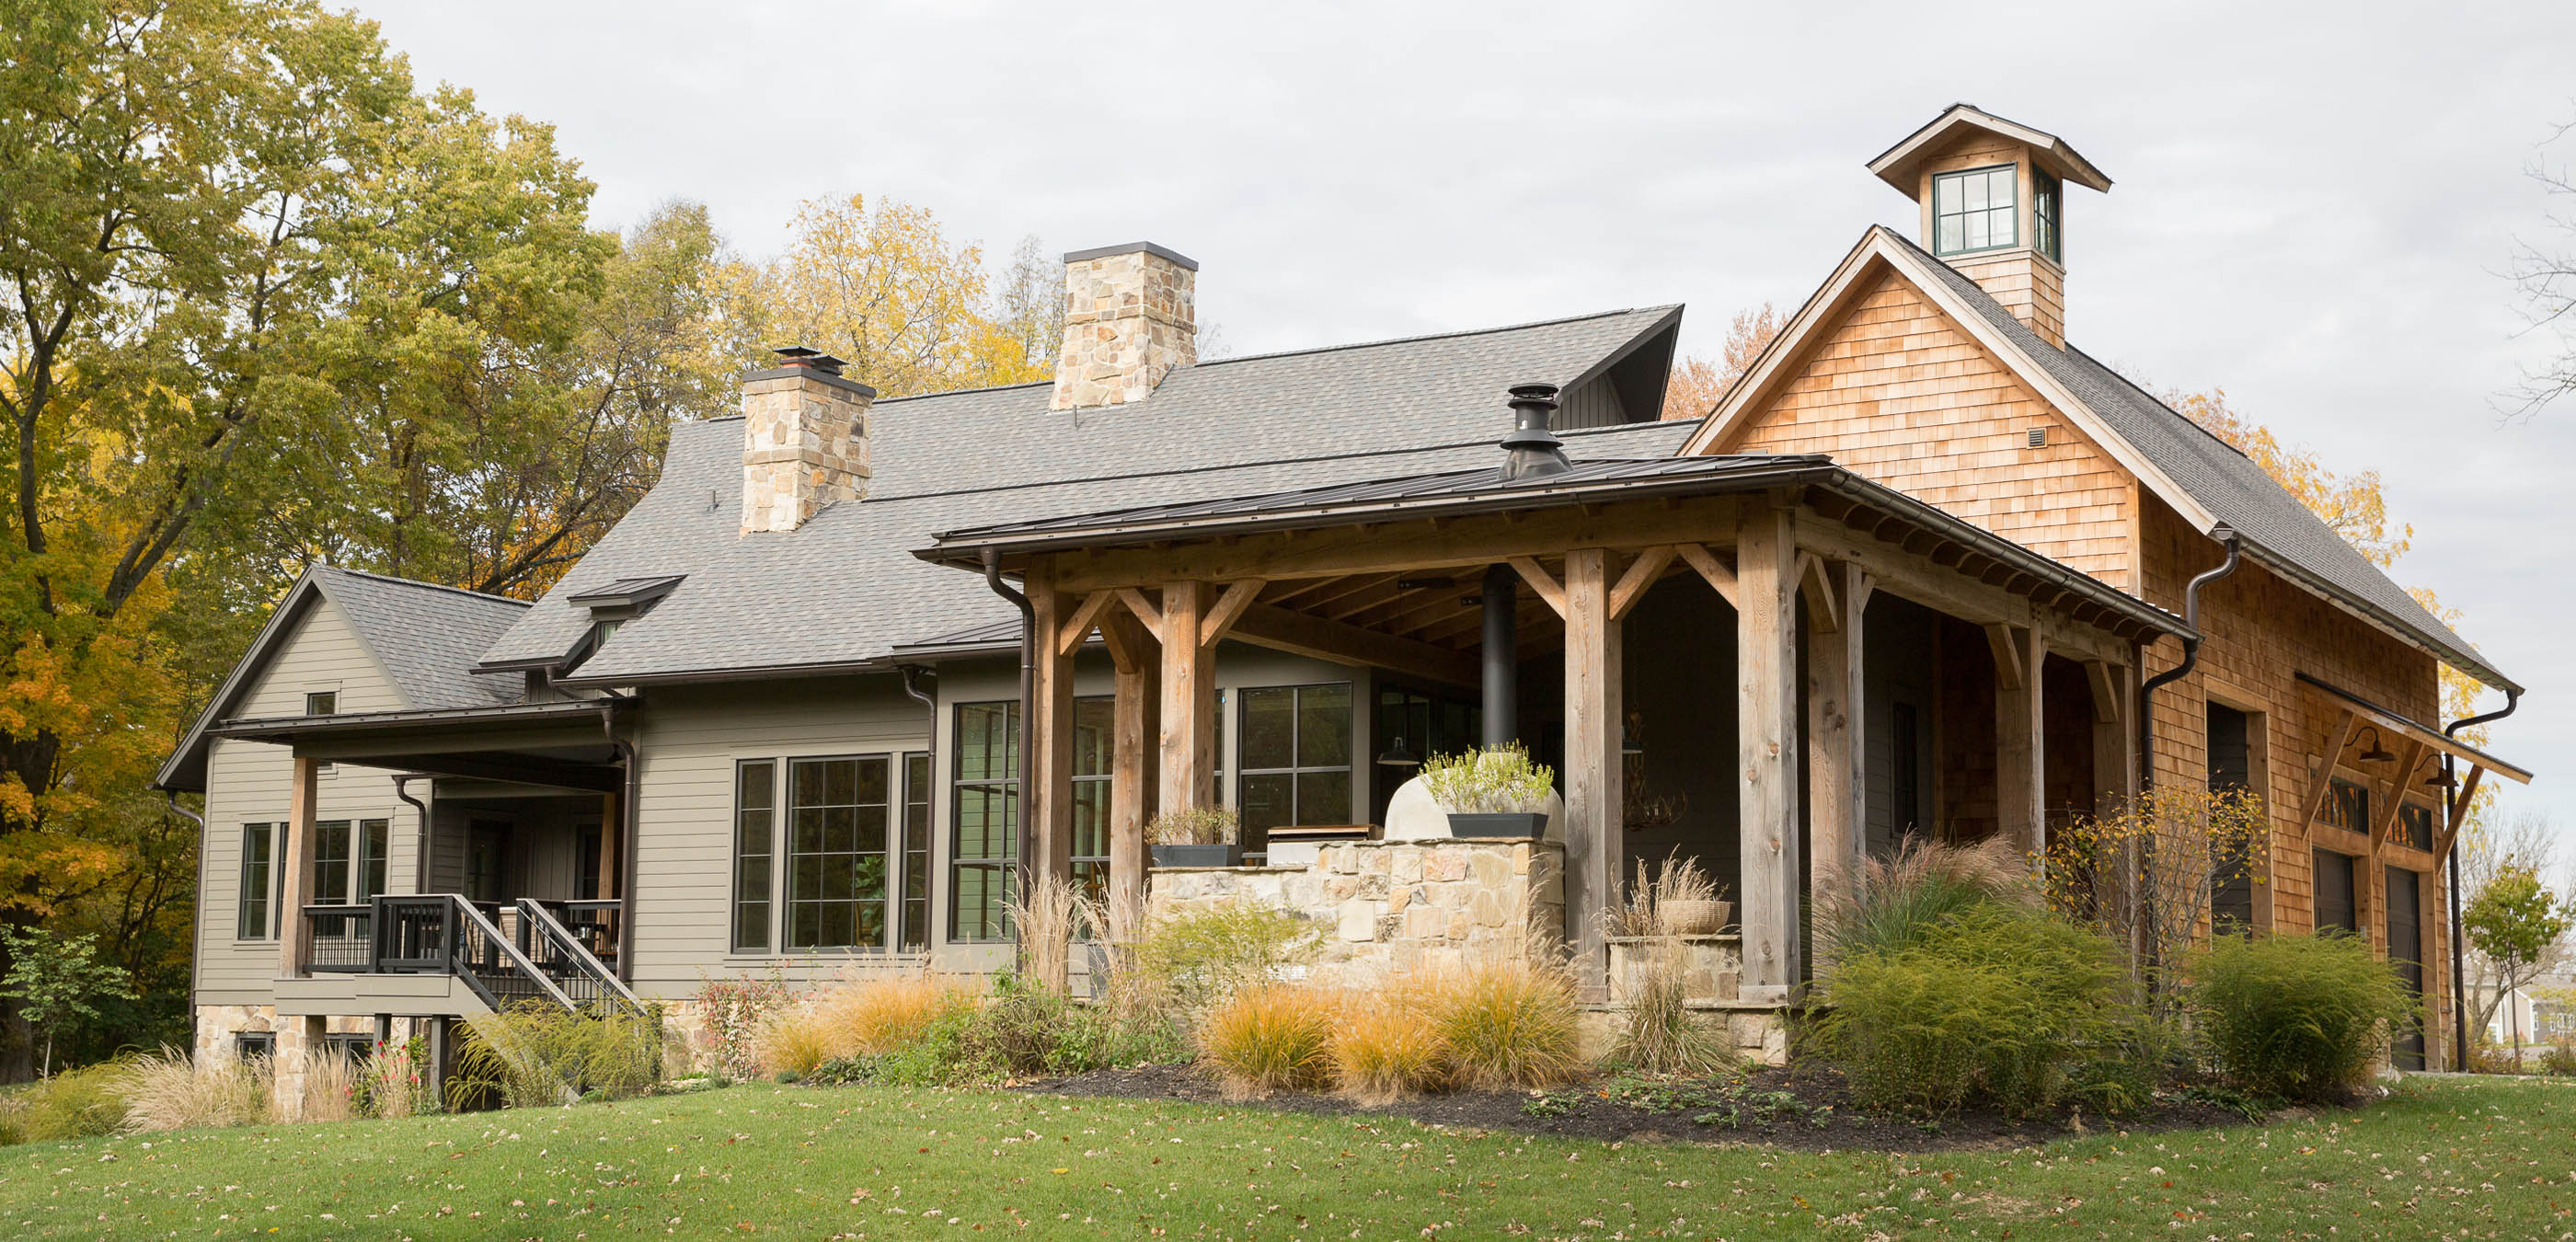 The Bellepoint Company - Distinctive Homes